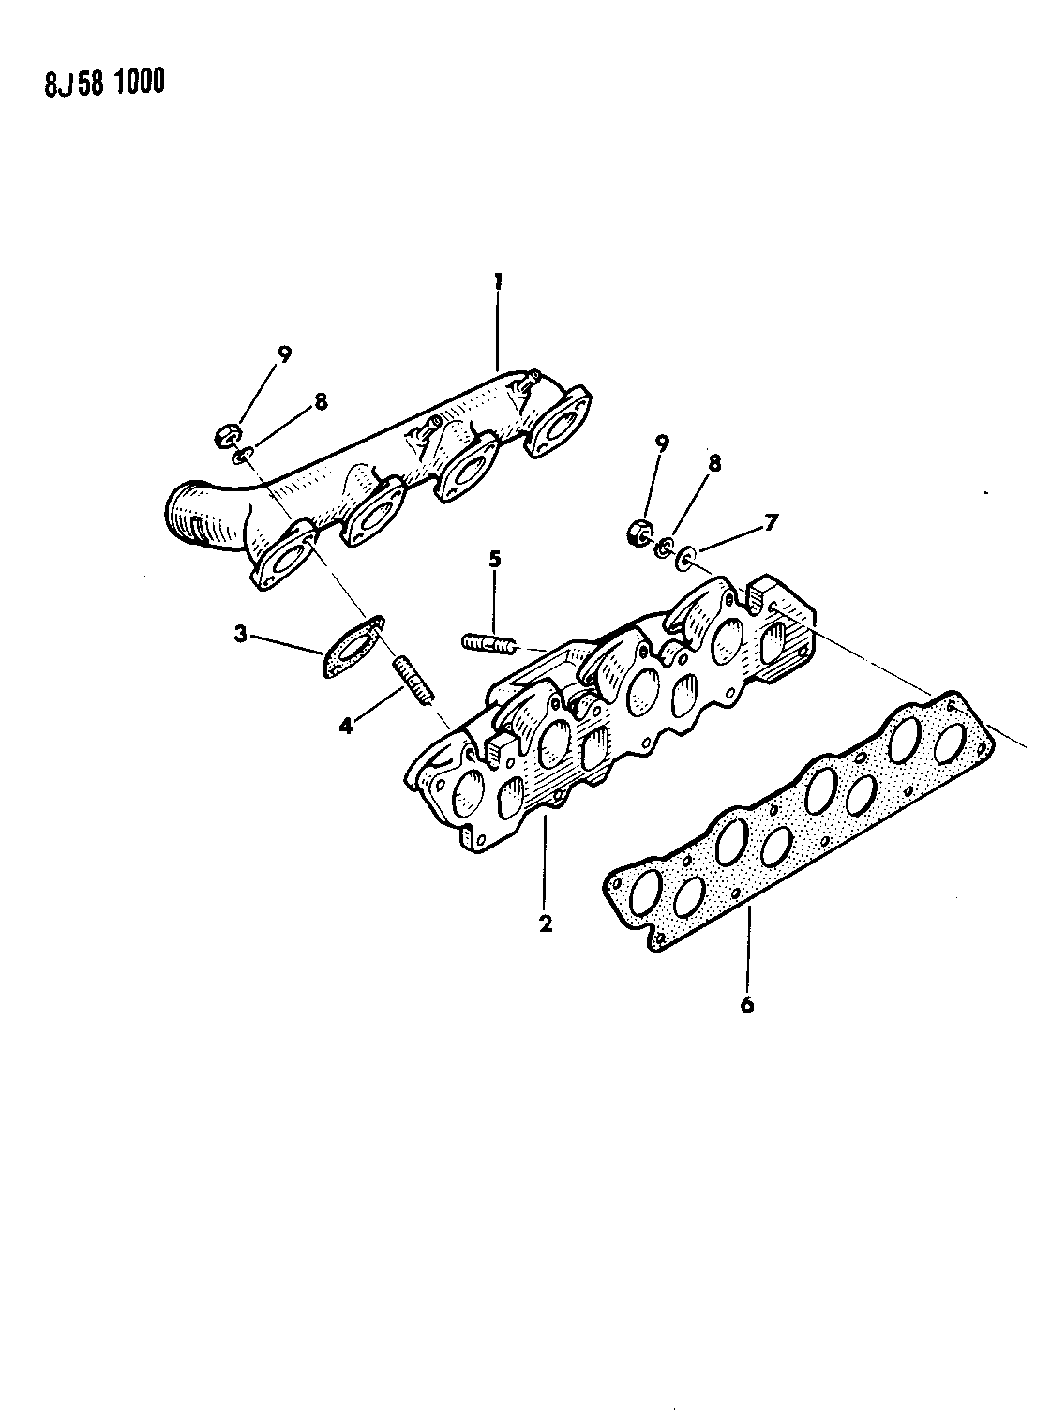 1989 Jeep Wrangler Manifold Intake Exhaust Engine Diagram Thumbnail 3